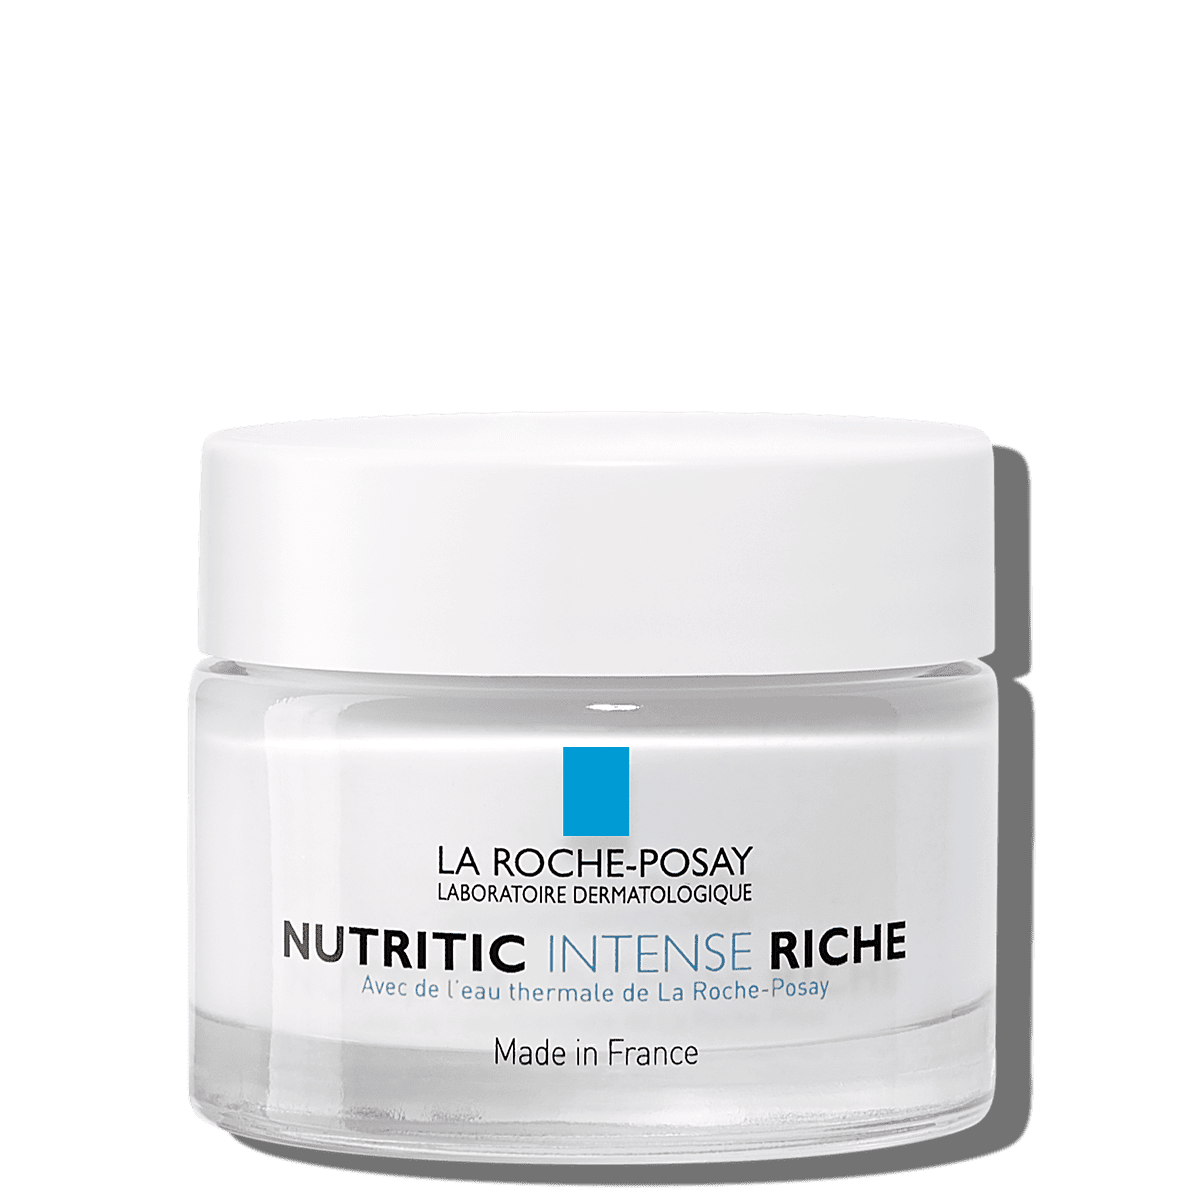 La Roche Posay ProductPage Face Care Nutritic Intense Rich Cream 50ml